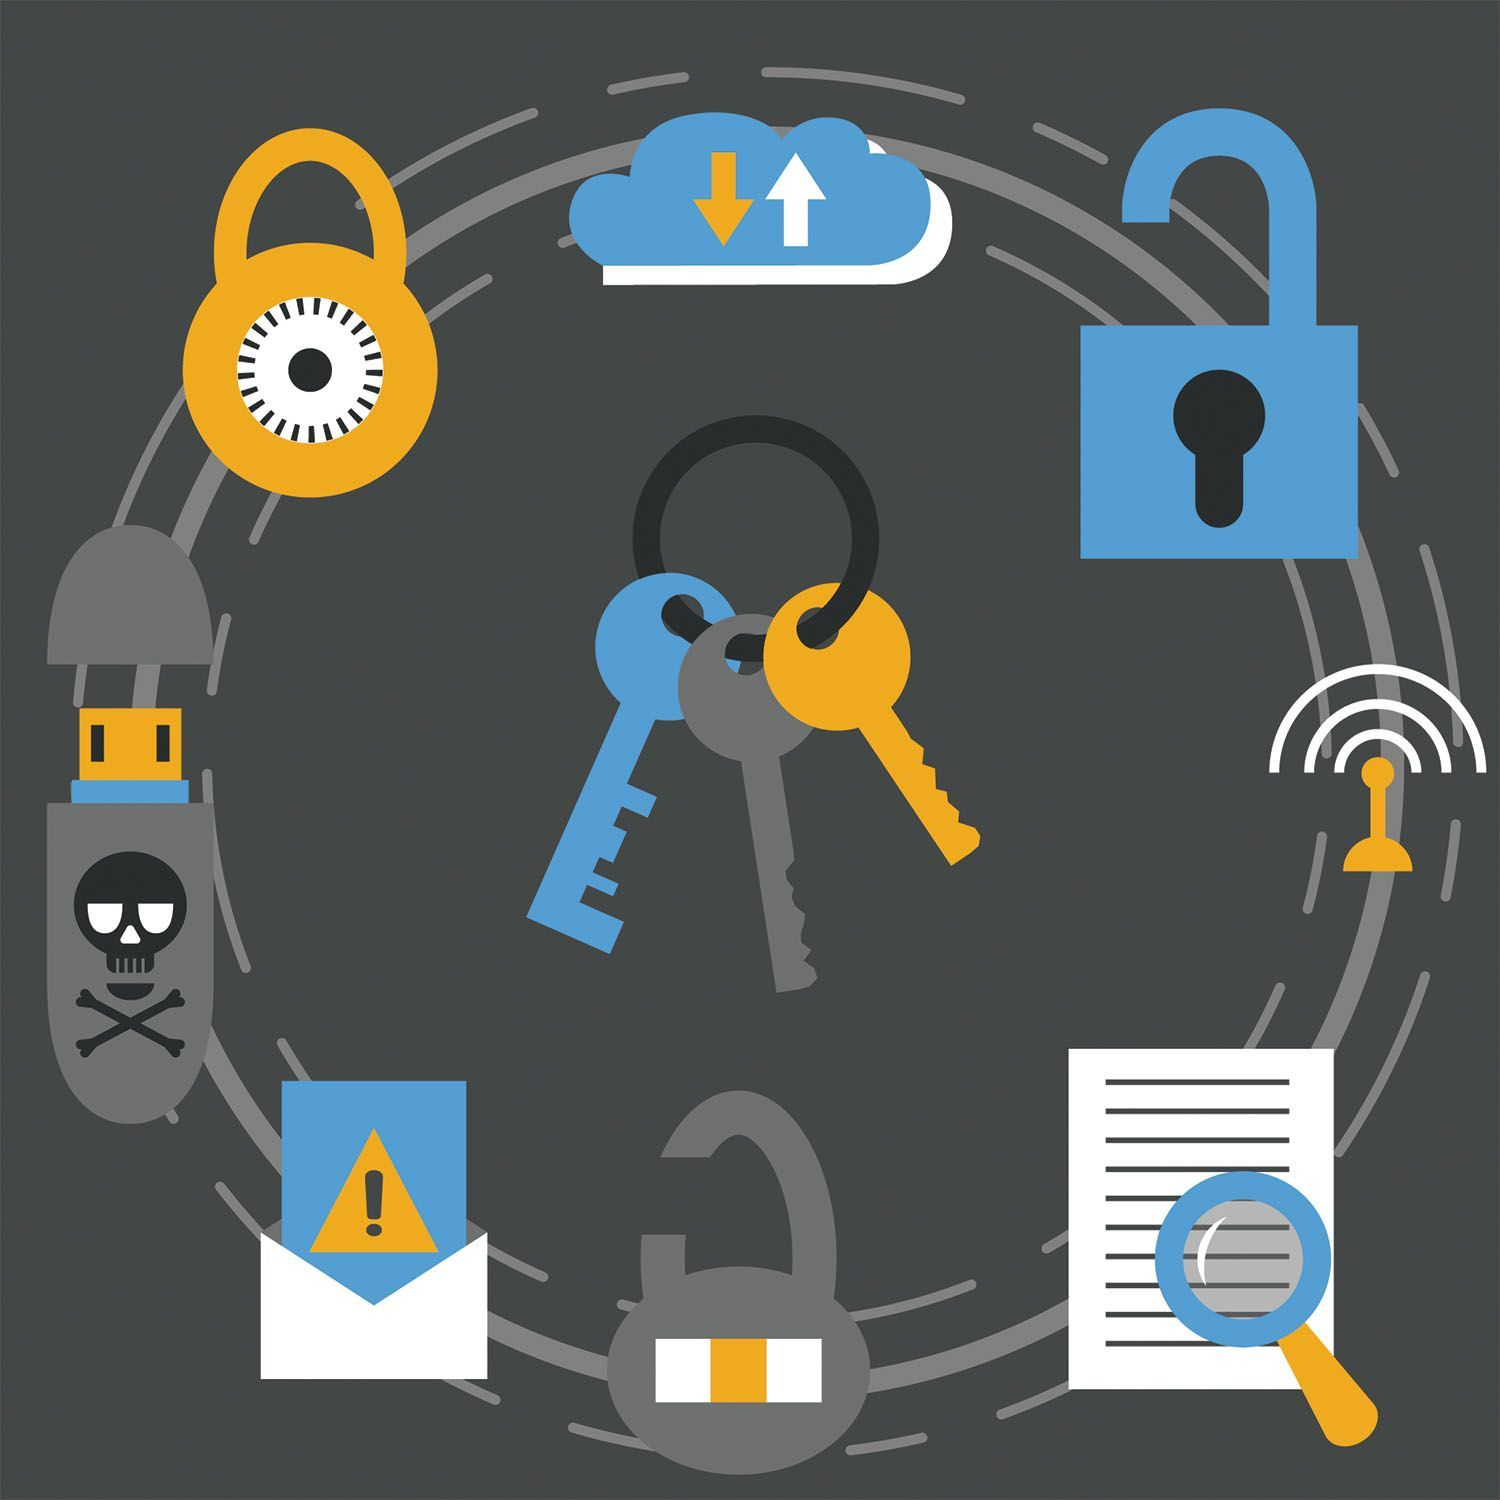 A Writer S Guide To Internet Safety How To Protect Yourself And Your Work While Writing On Your Computer From Triona Guidry For The Writer Mag Screenplay